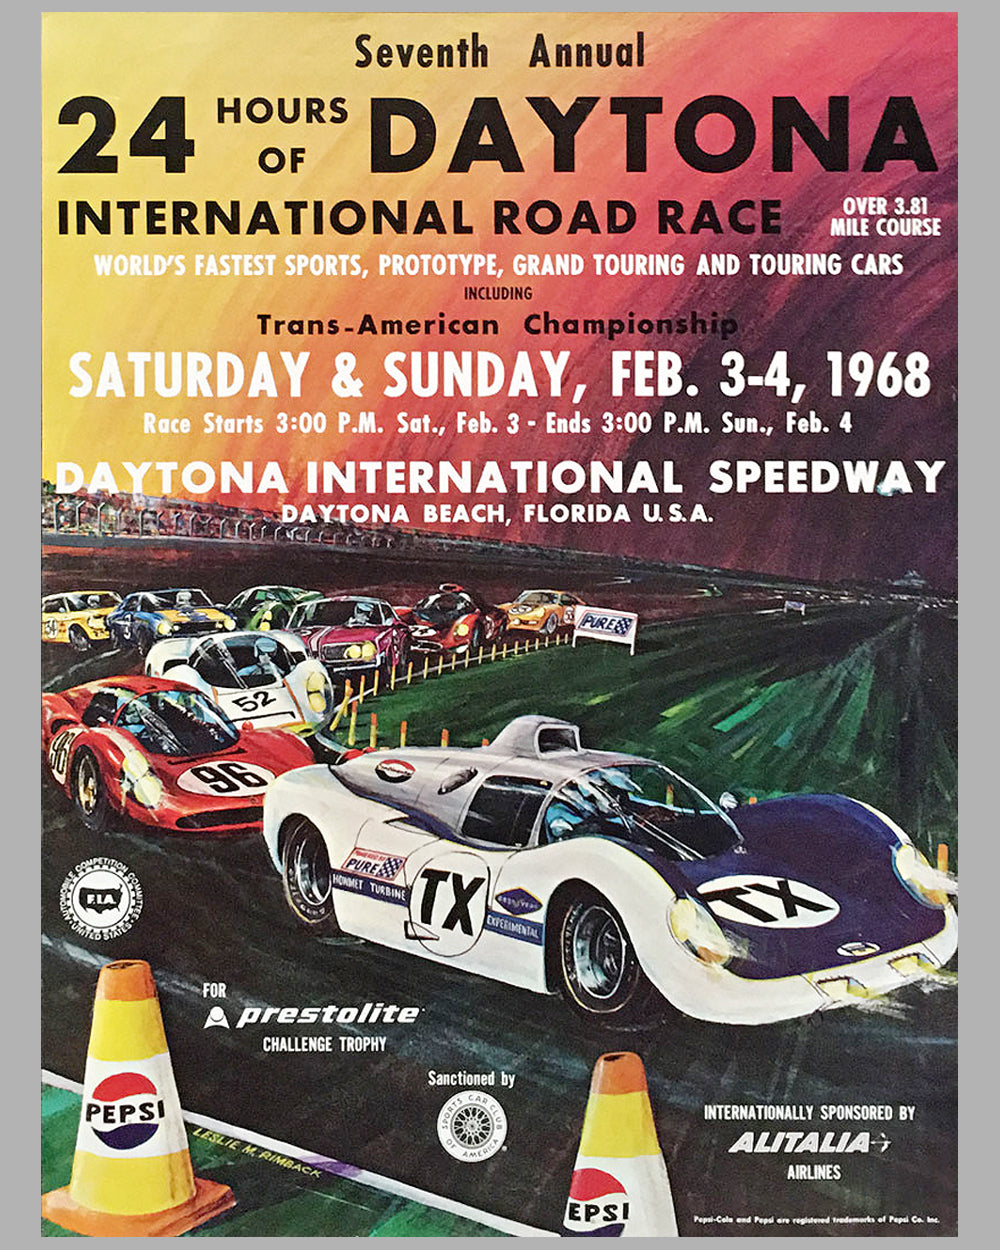 1968 24 hours of Daytona original race poster by Leslie Rimback